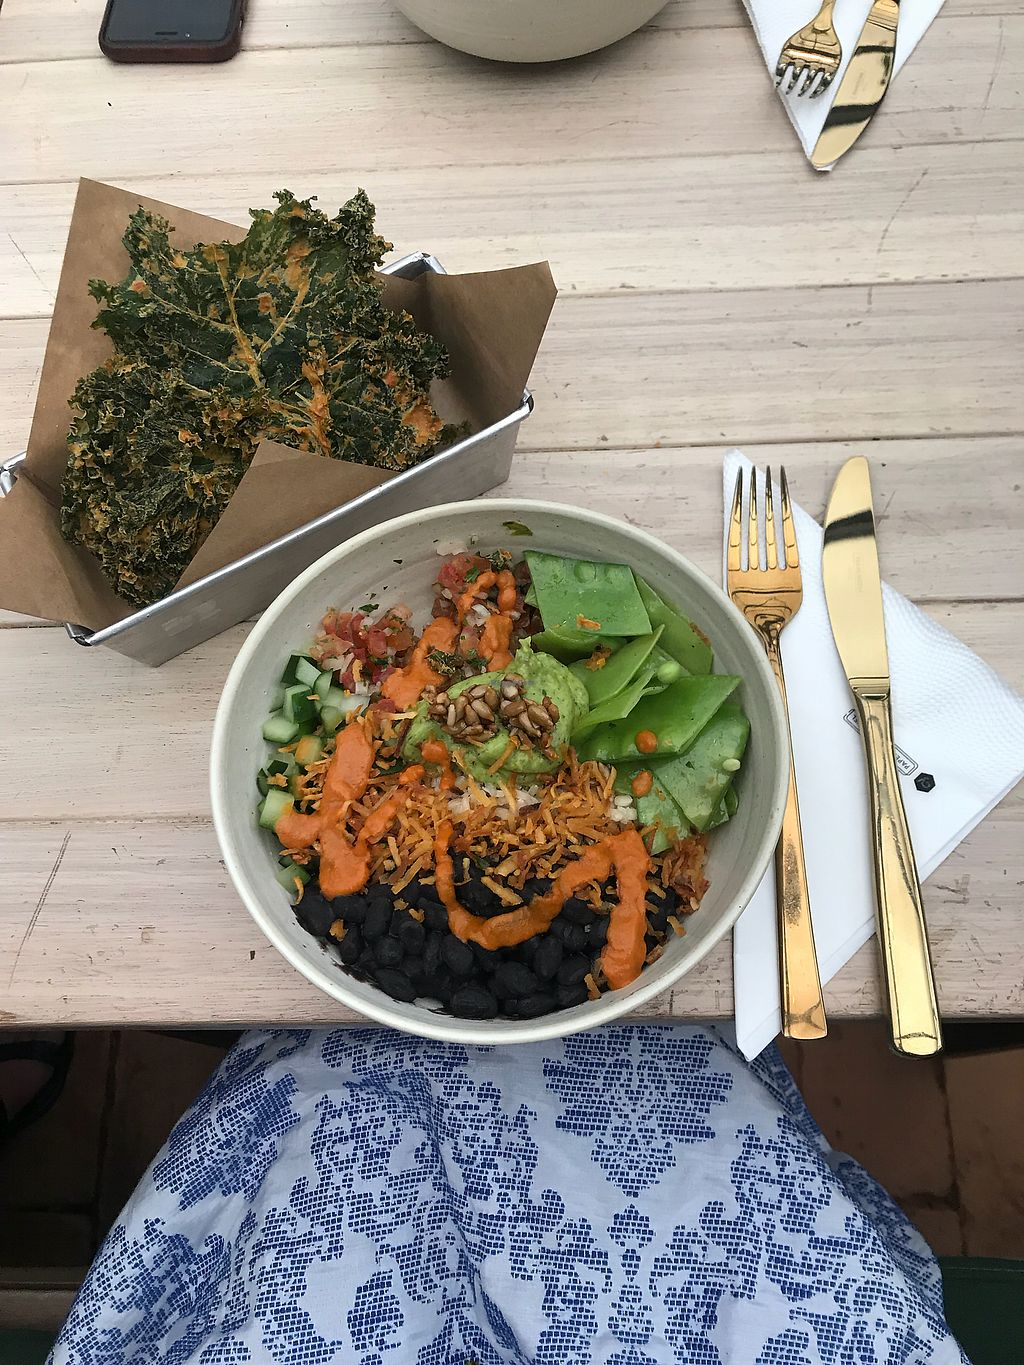 "Photo of Urban Farmcy  by <a href=""/members/profile/fernandacassel"">fernandacassel</a> <br/>Mexican Bowl and Kale Chips <br/> March 18, 2018  - <a href='/contact/abuse/image/94671/372474'>Report</a>"